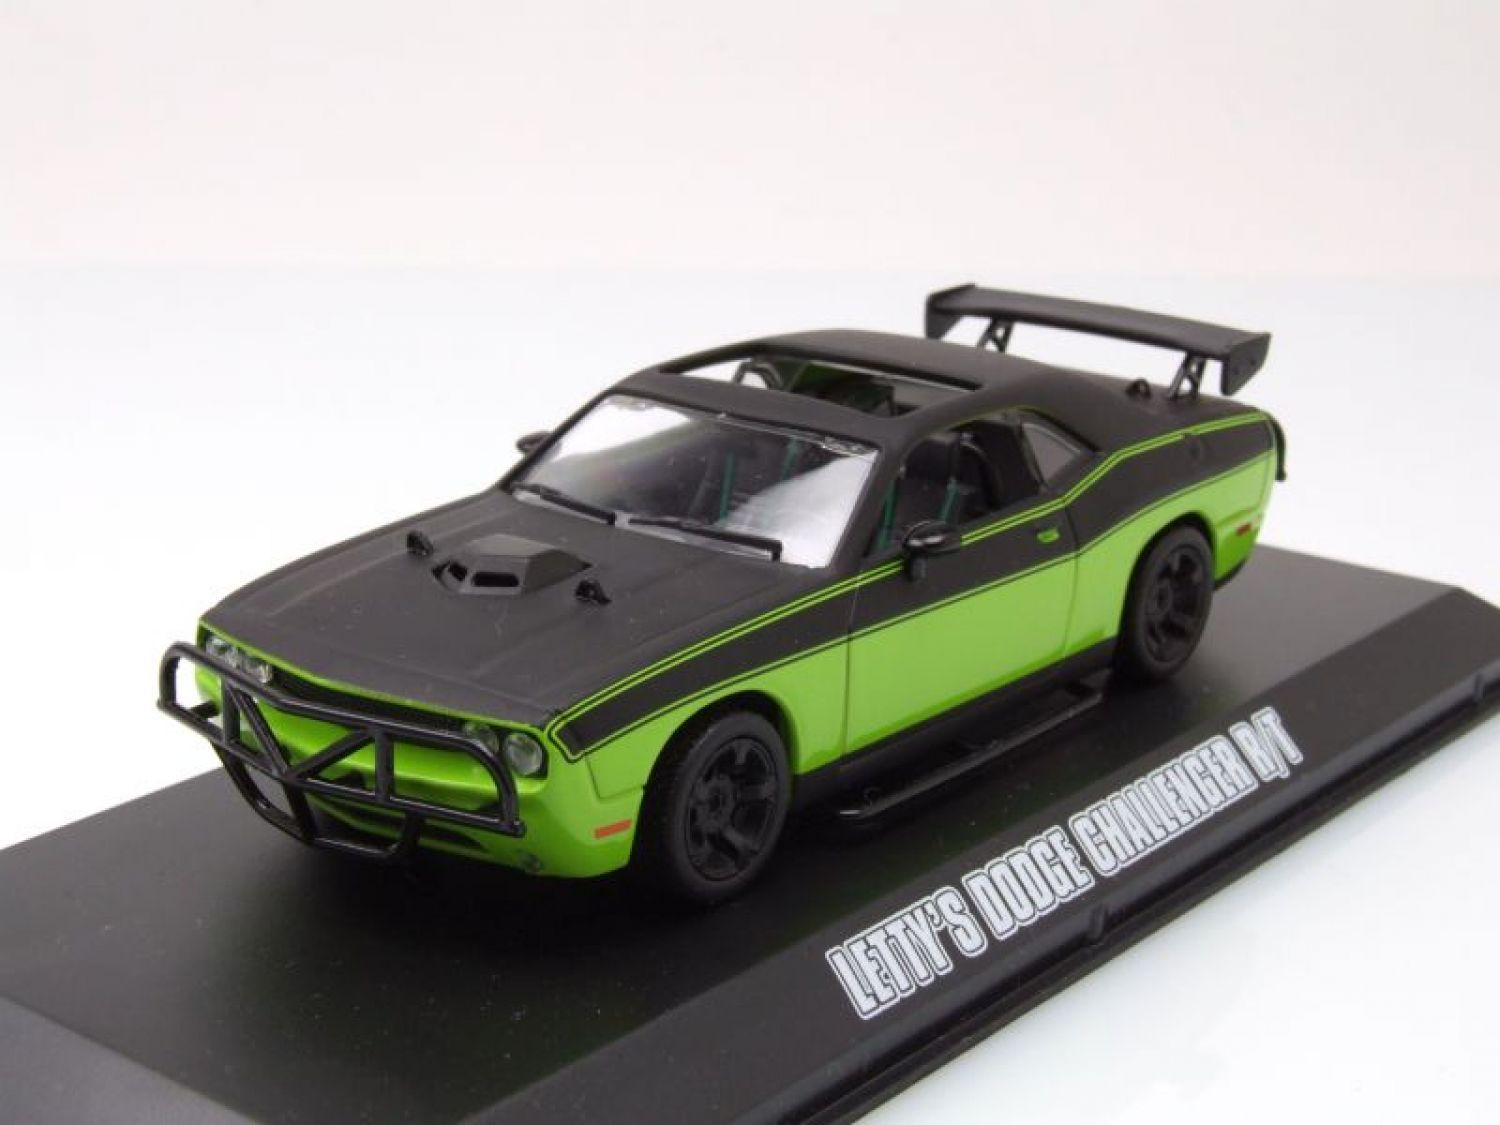 dodge challenger r t 2014 letty fast furious. Black Bedroom Furniture Sets. Home Design Ideas